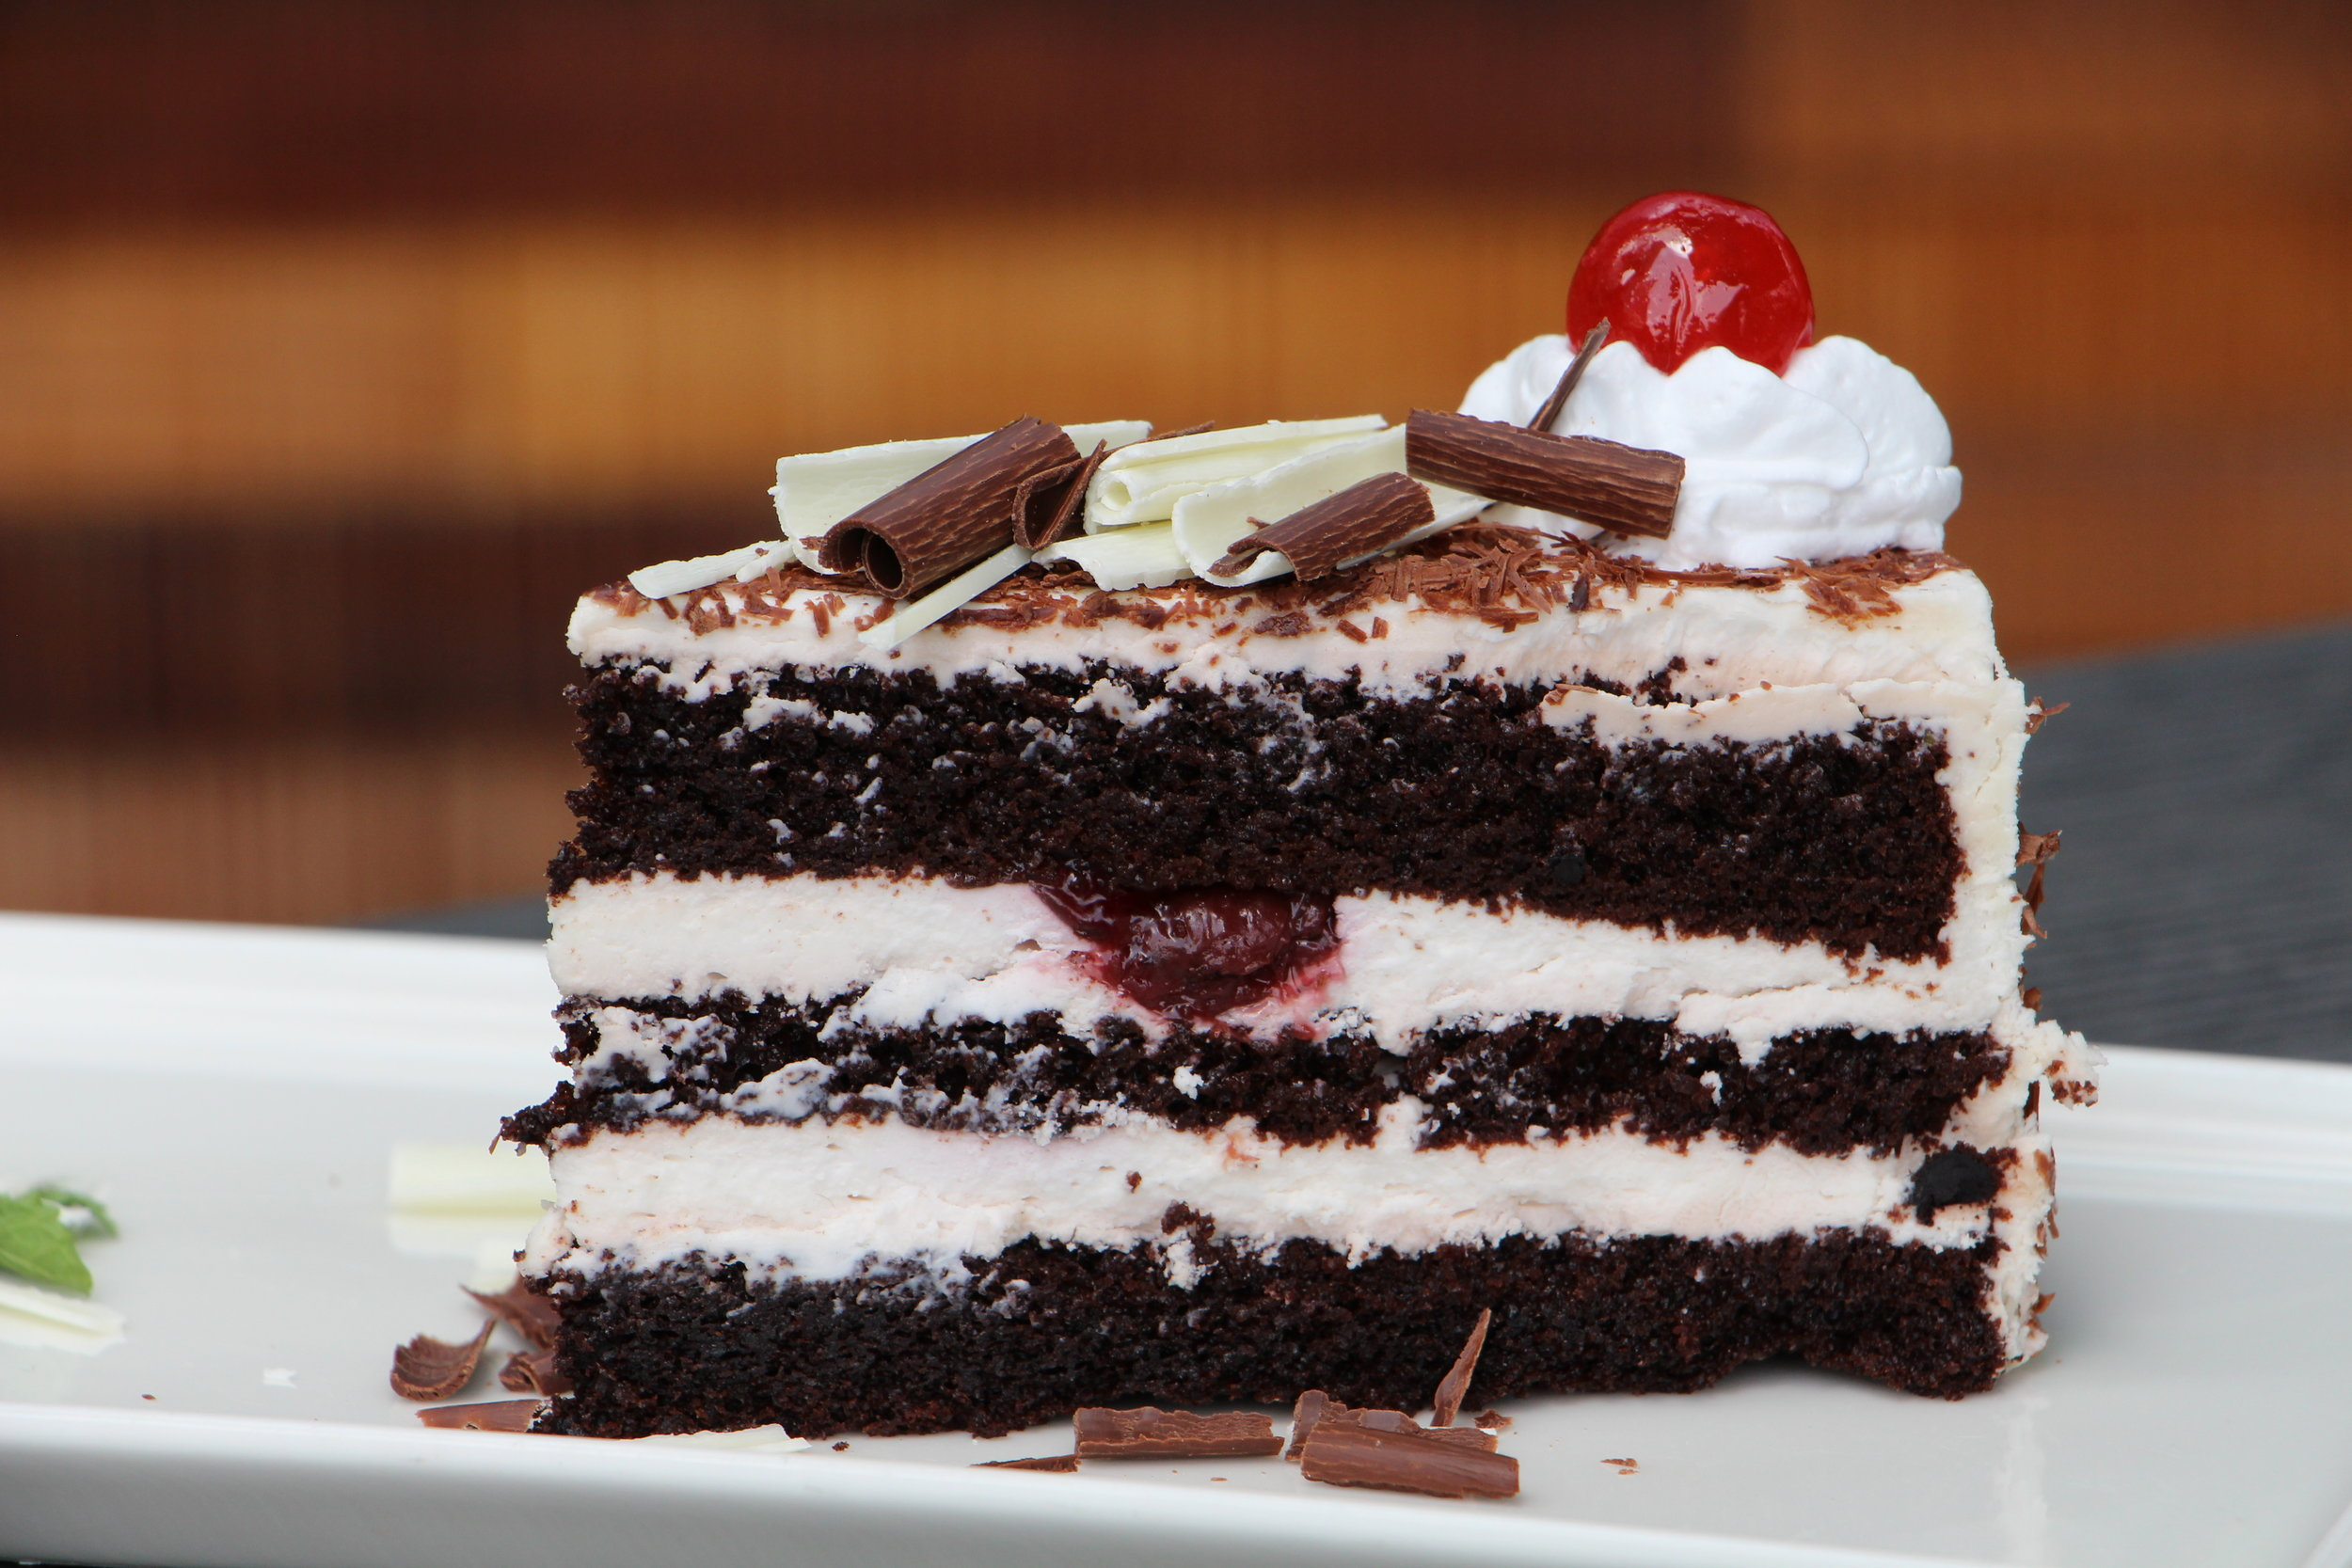 Layers of chocolate cake with fresh whipped cream and maraschino cherries is a classic and never disappoints.